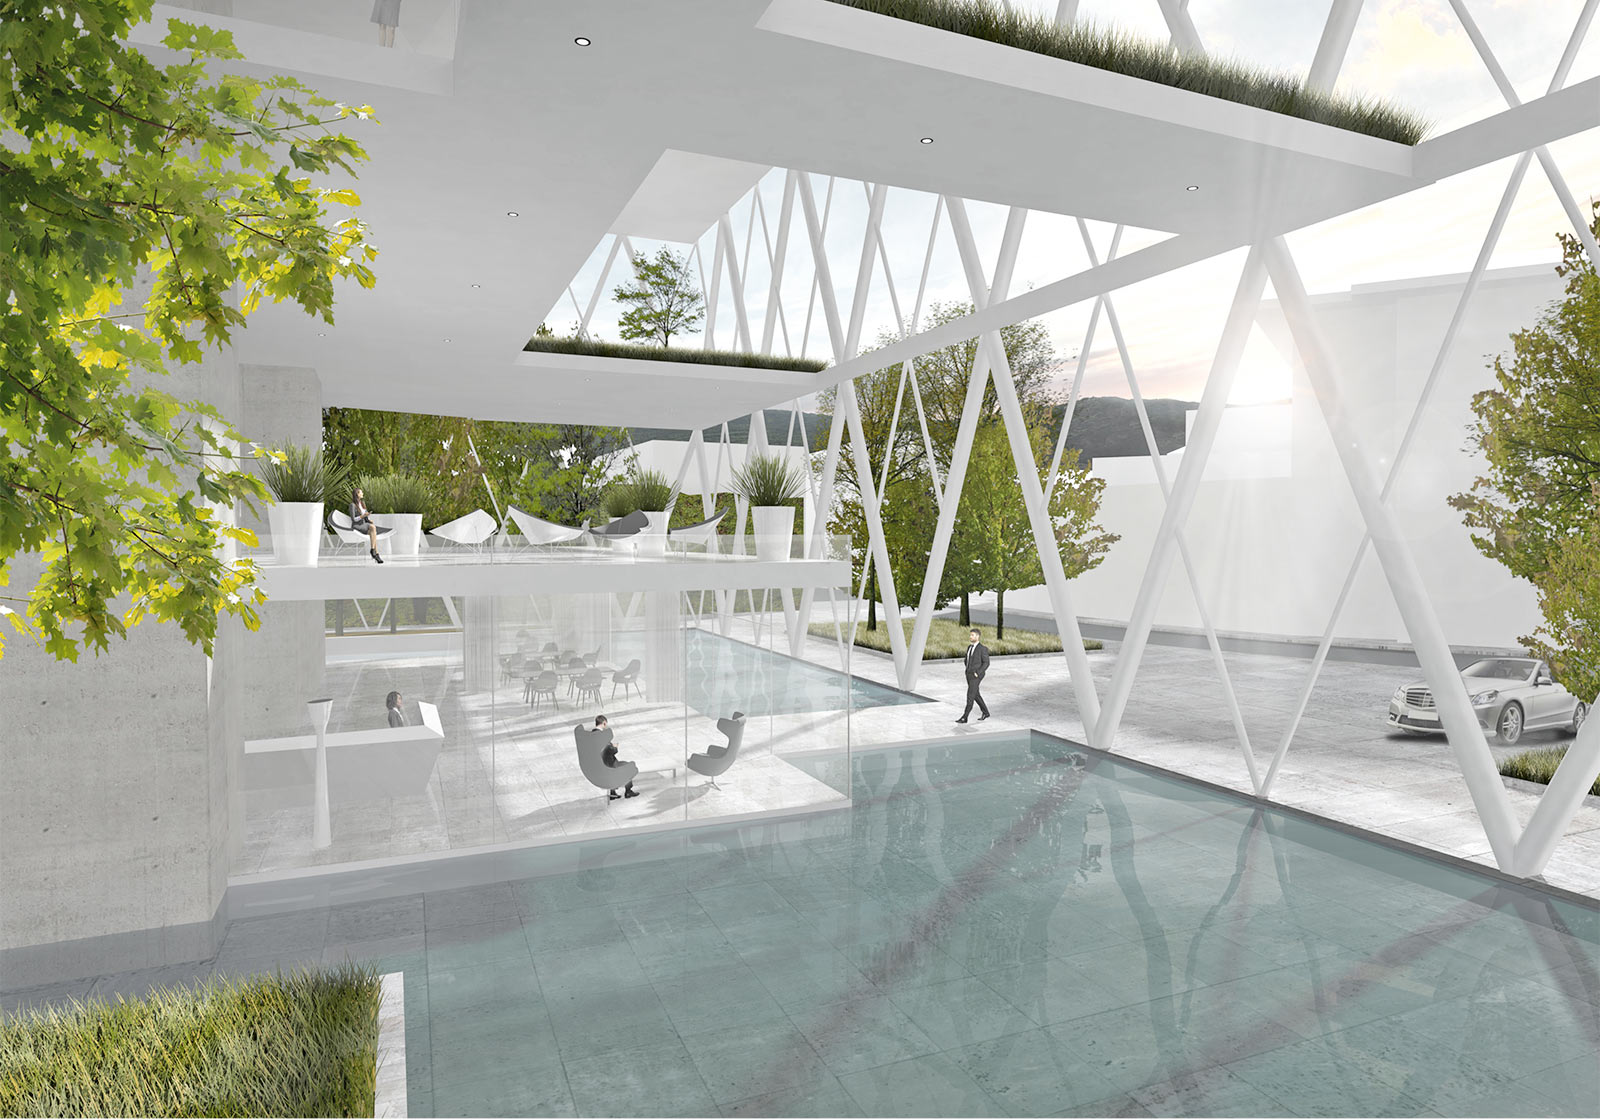 Working surrounded by greenery: Free spaces and areas for relaxation. Visualization: ATP